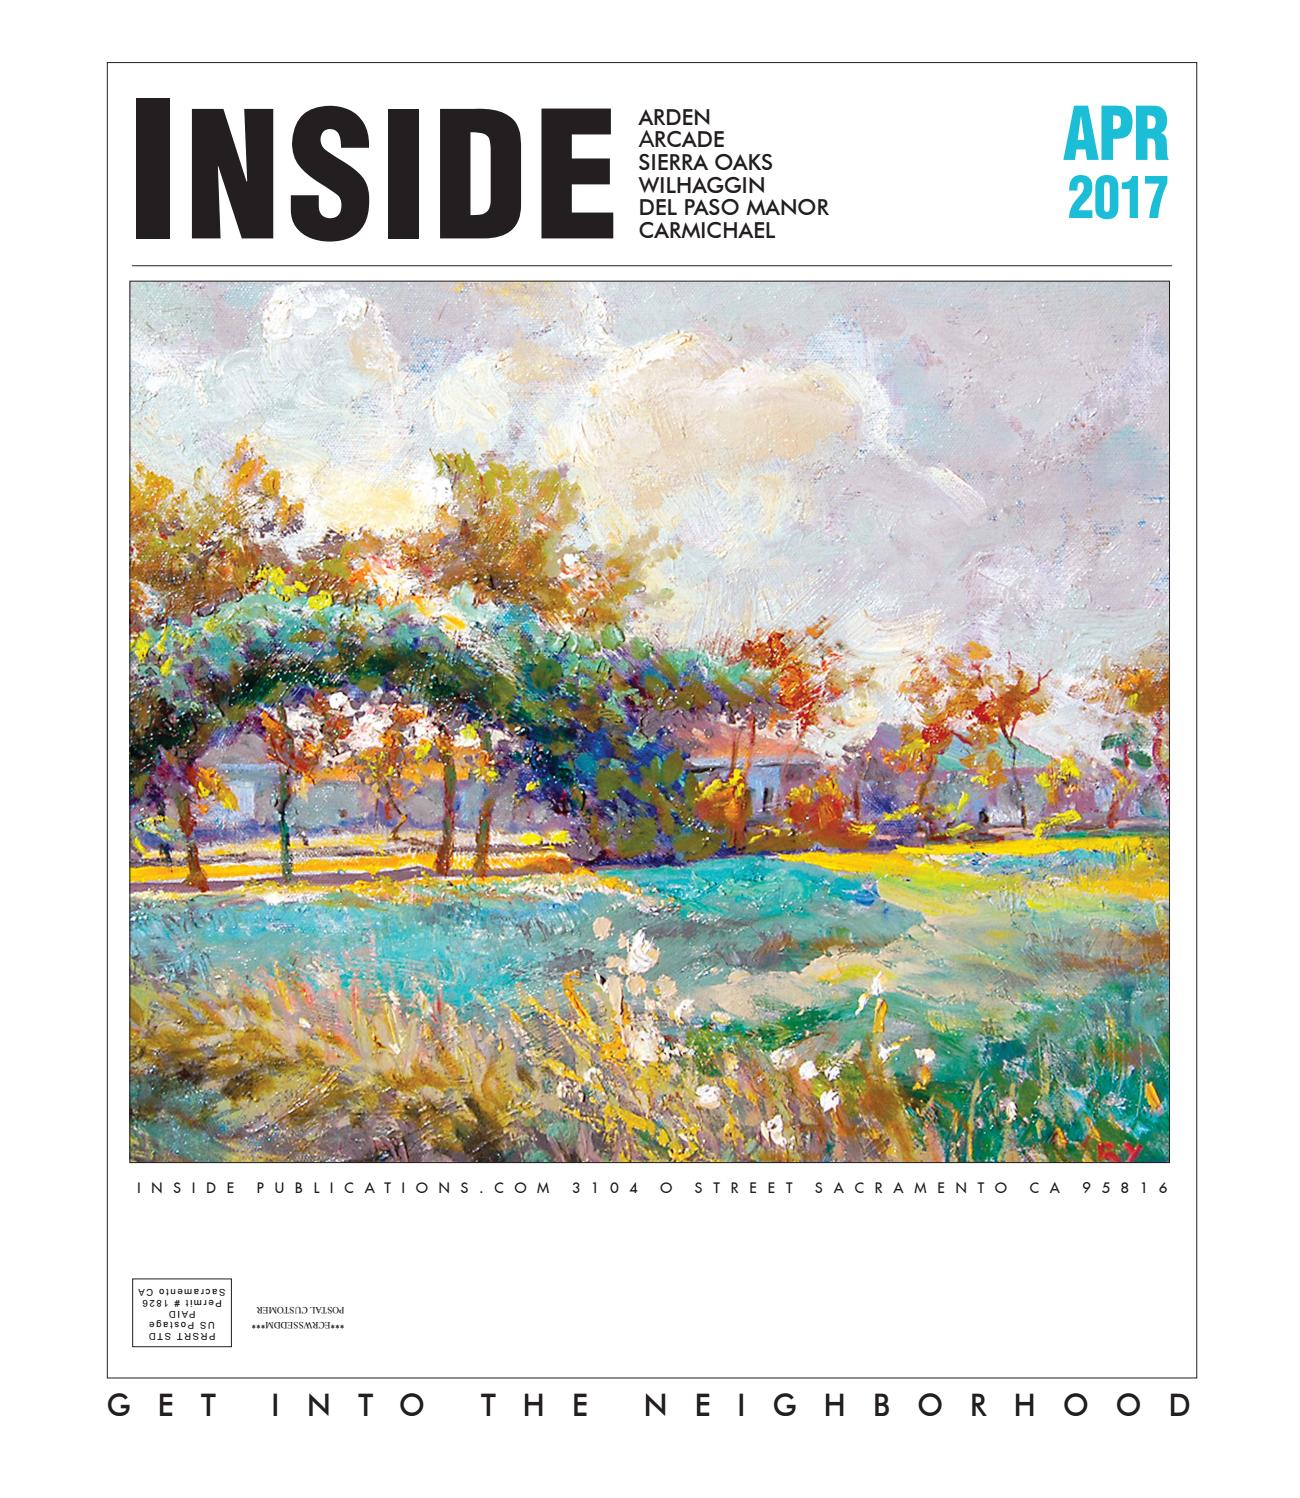 Inside arden april 2017 by Inside Publications issuu